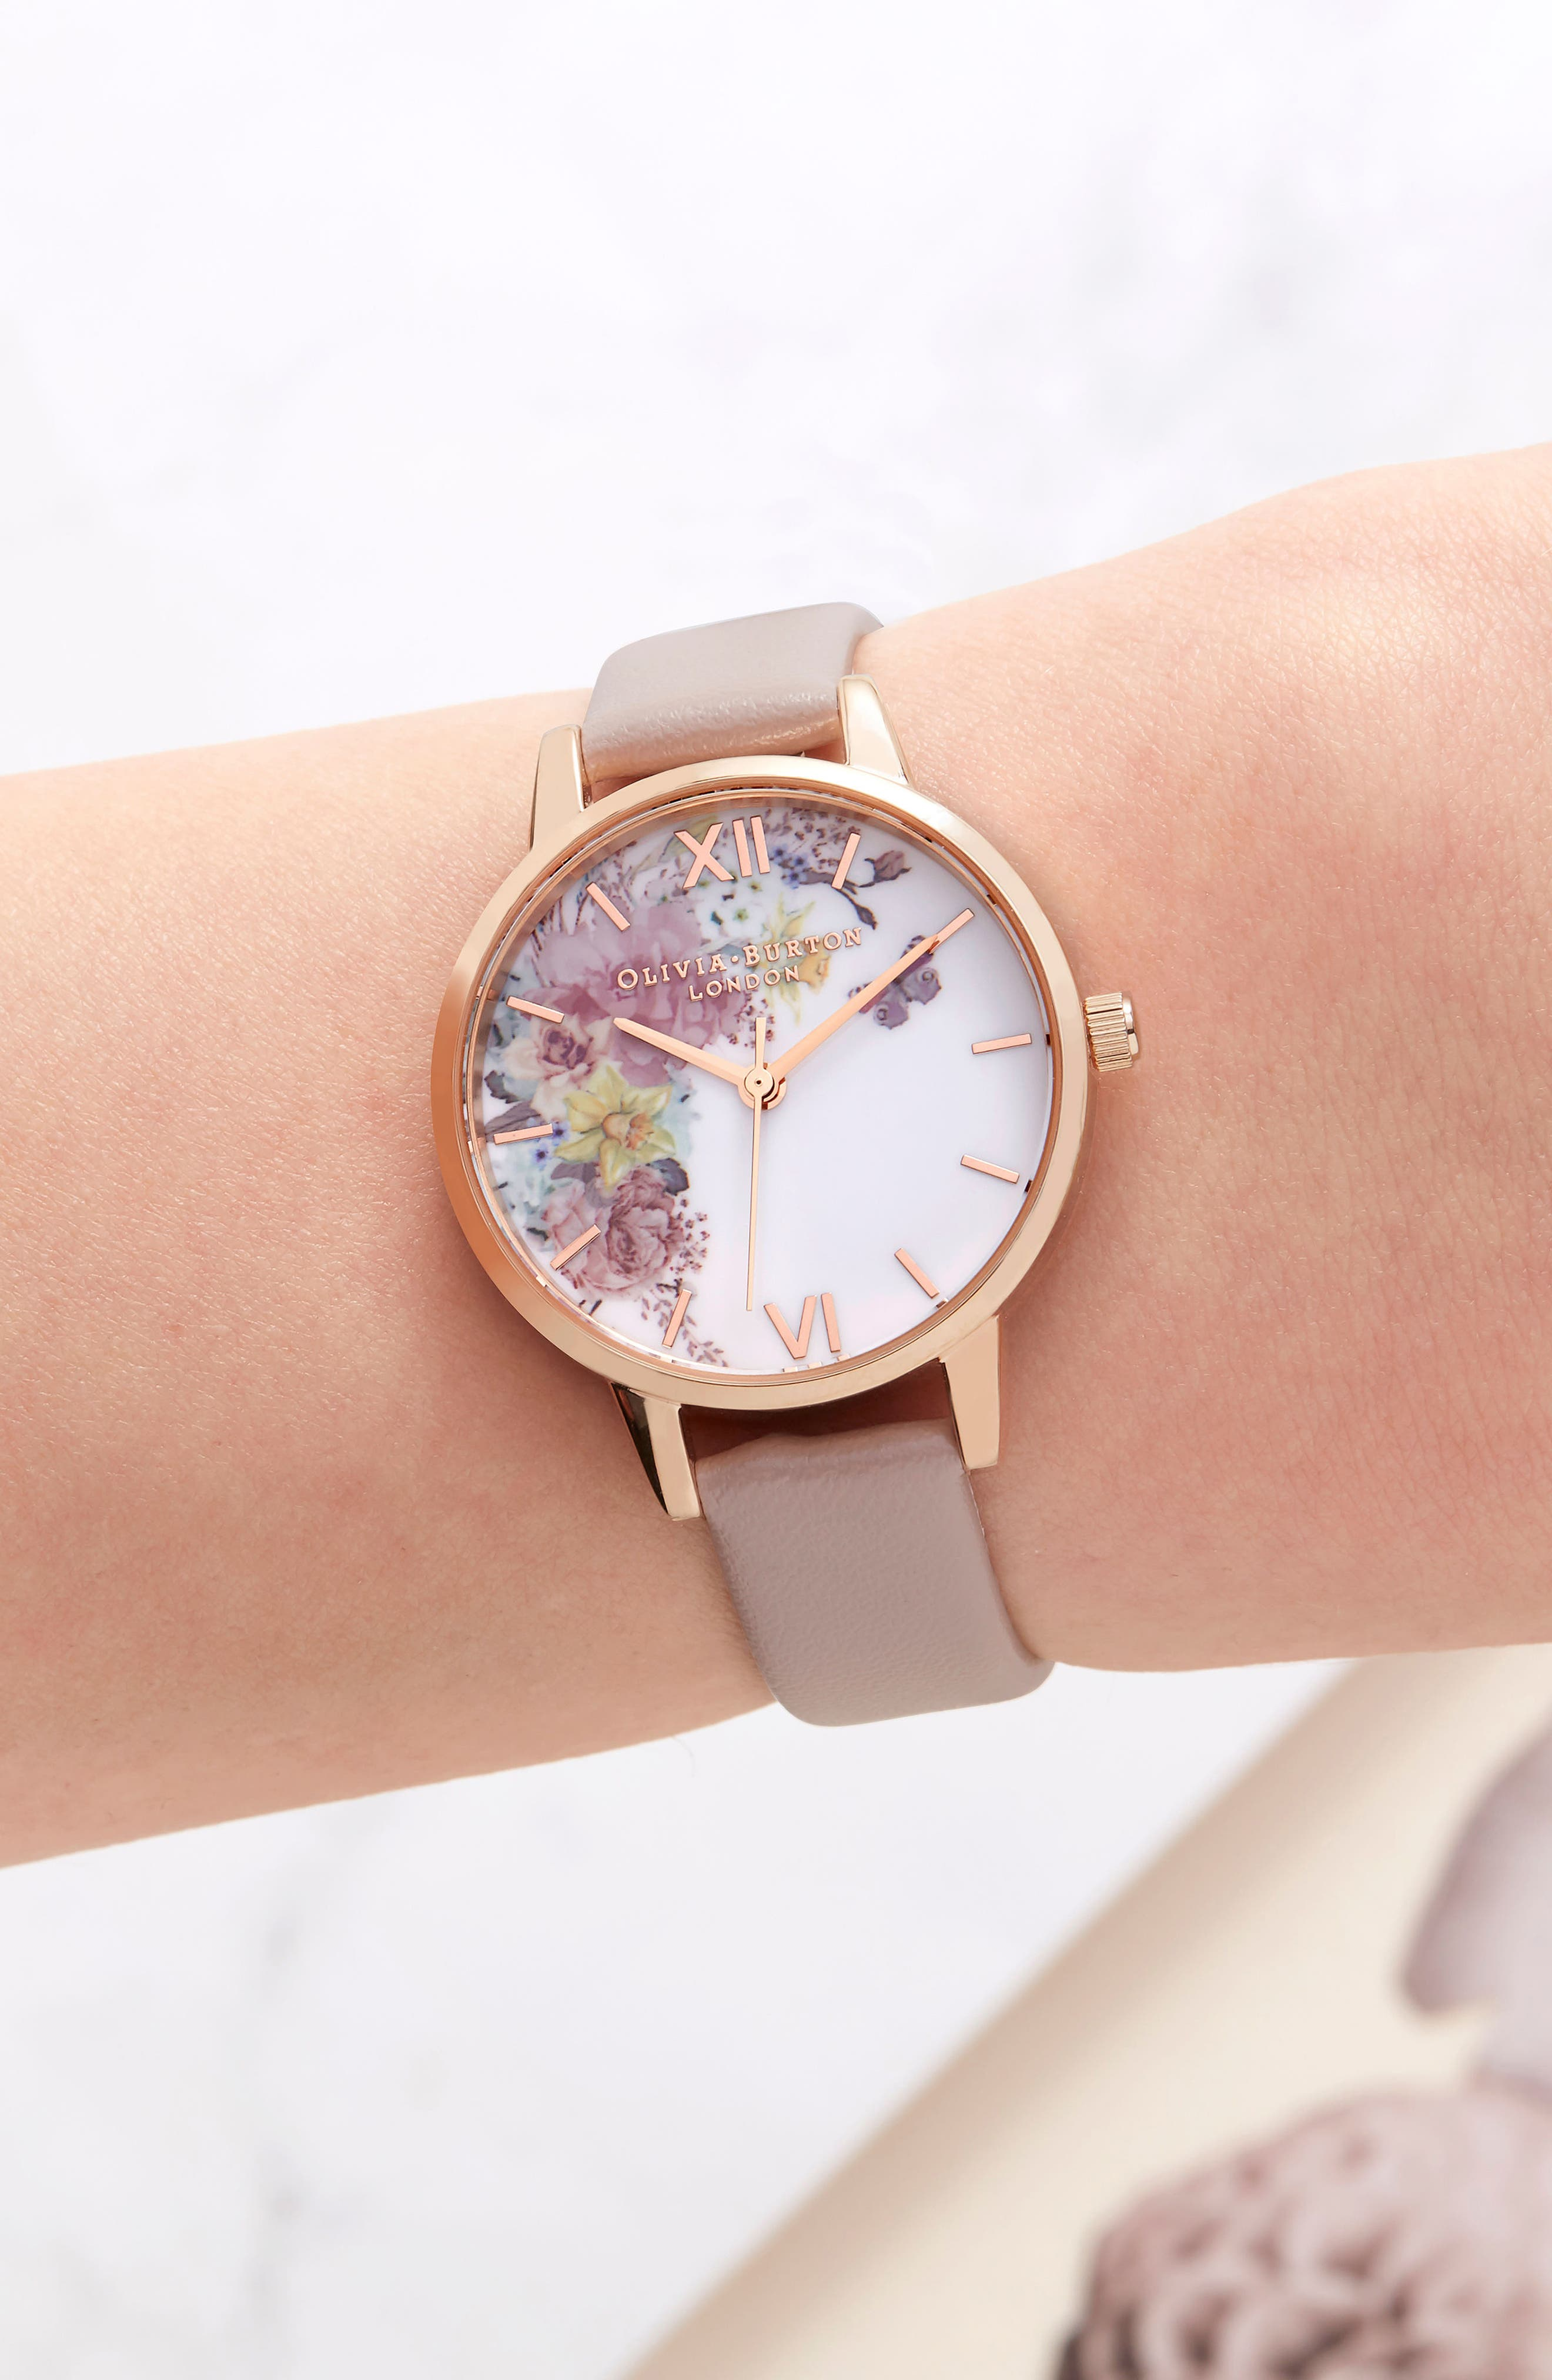 Enchanted Garden Faux Leather Strap Watch, 30mm,                             Alternate thumbnail 7, color,                             SAND/ FLORAL/ ROSE GOLD